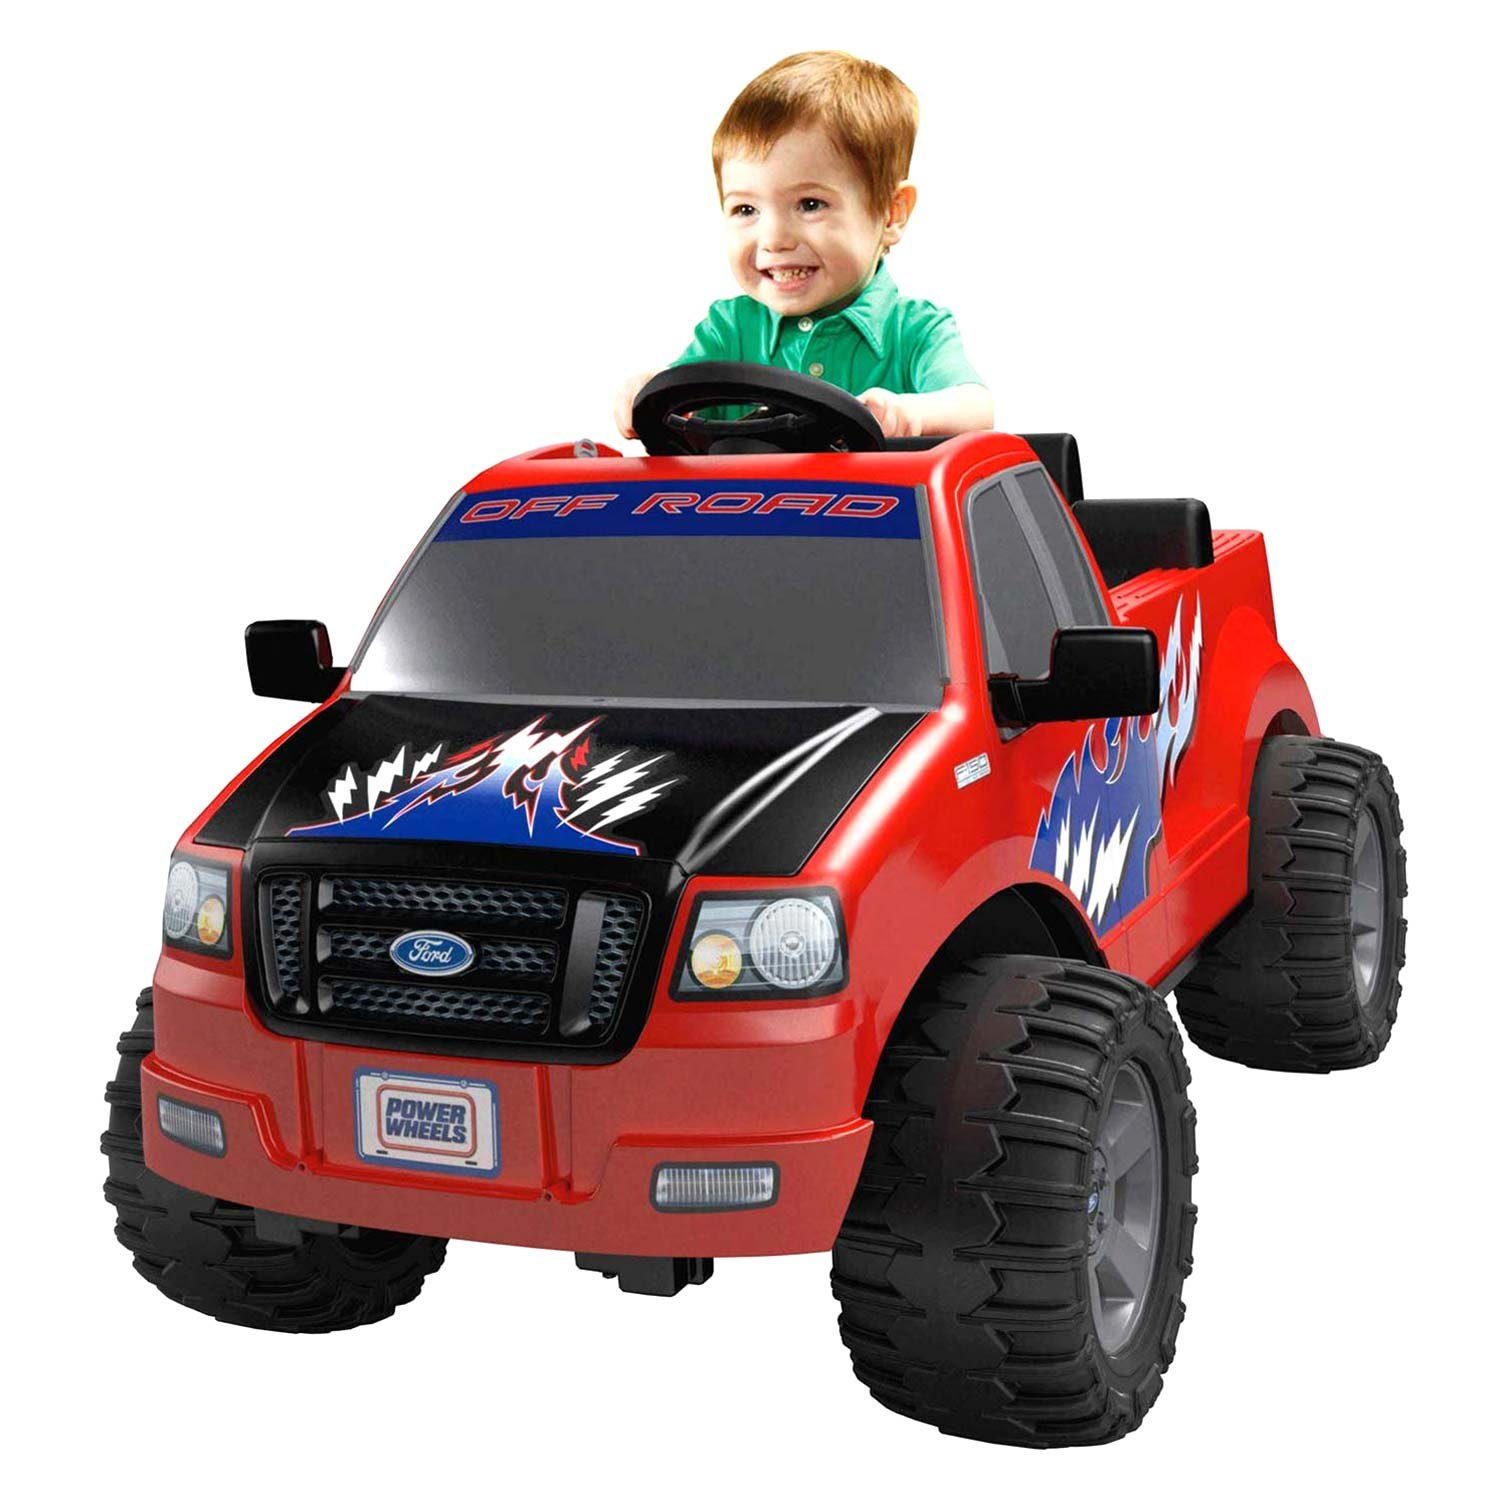 Ford Toys For Boys : Power wheels dmk red ford lil f